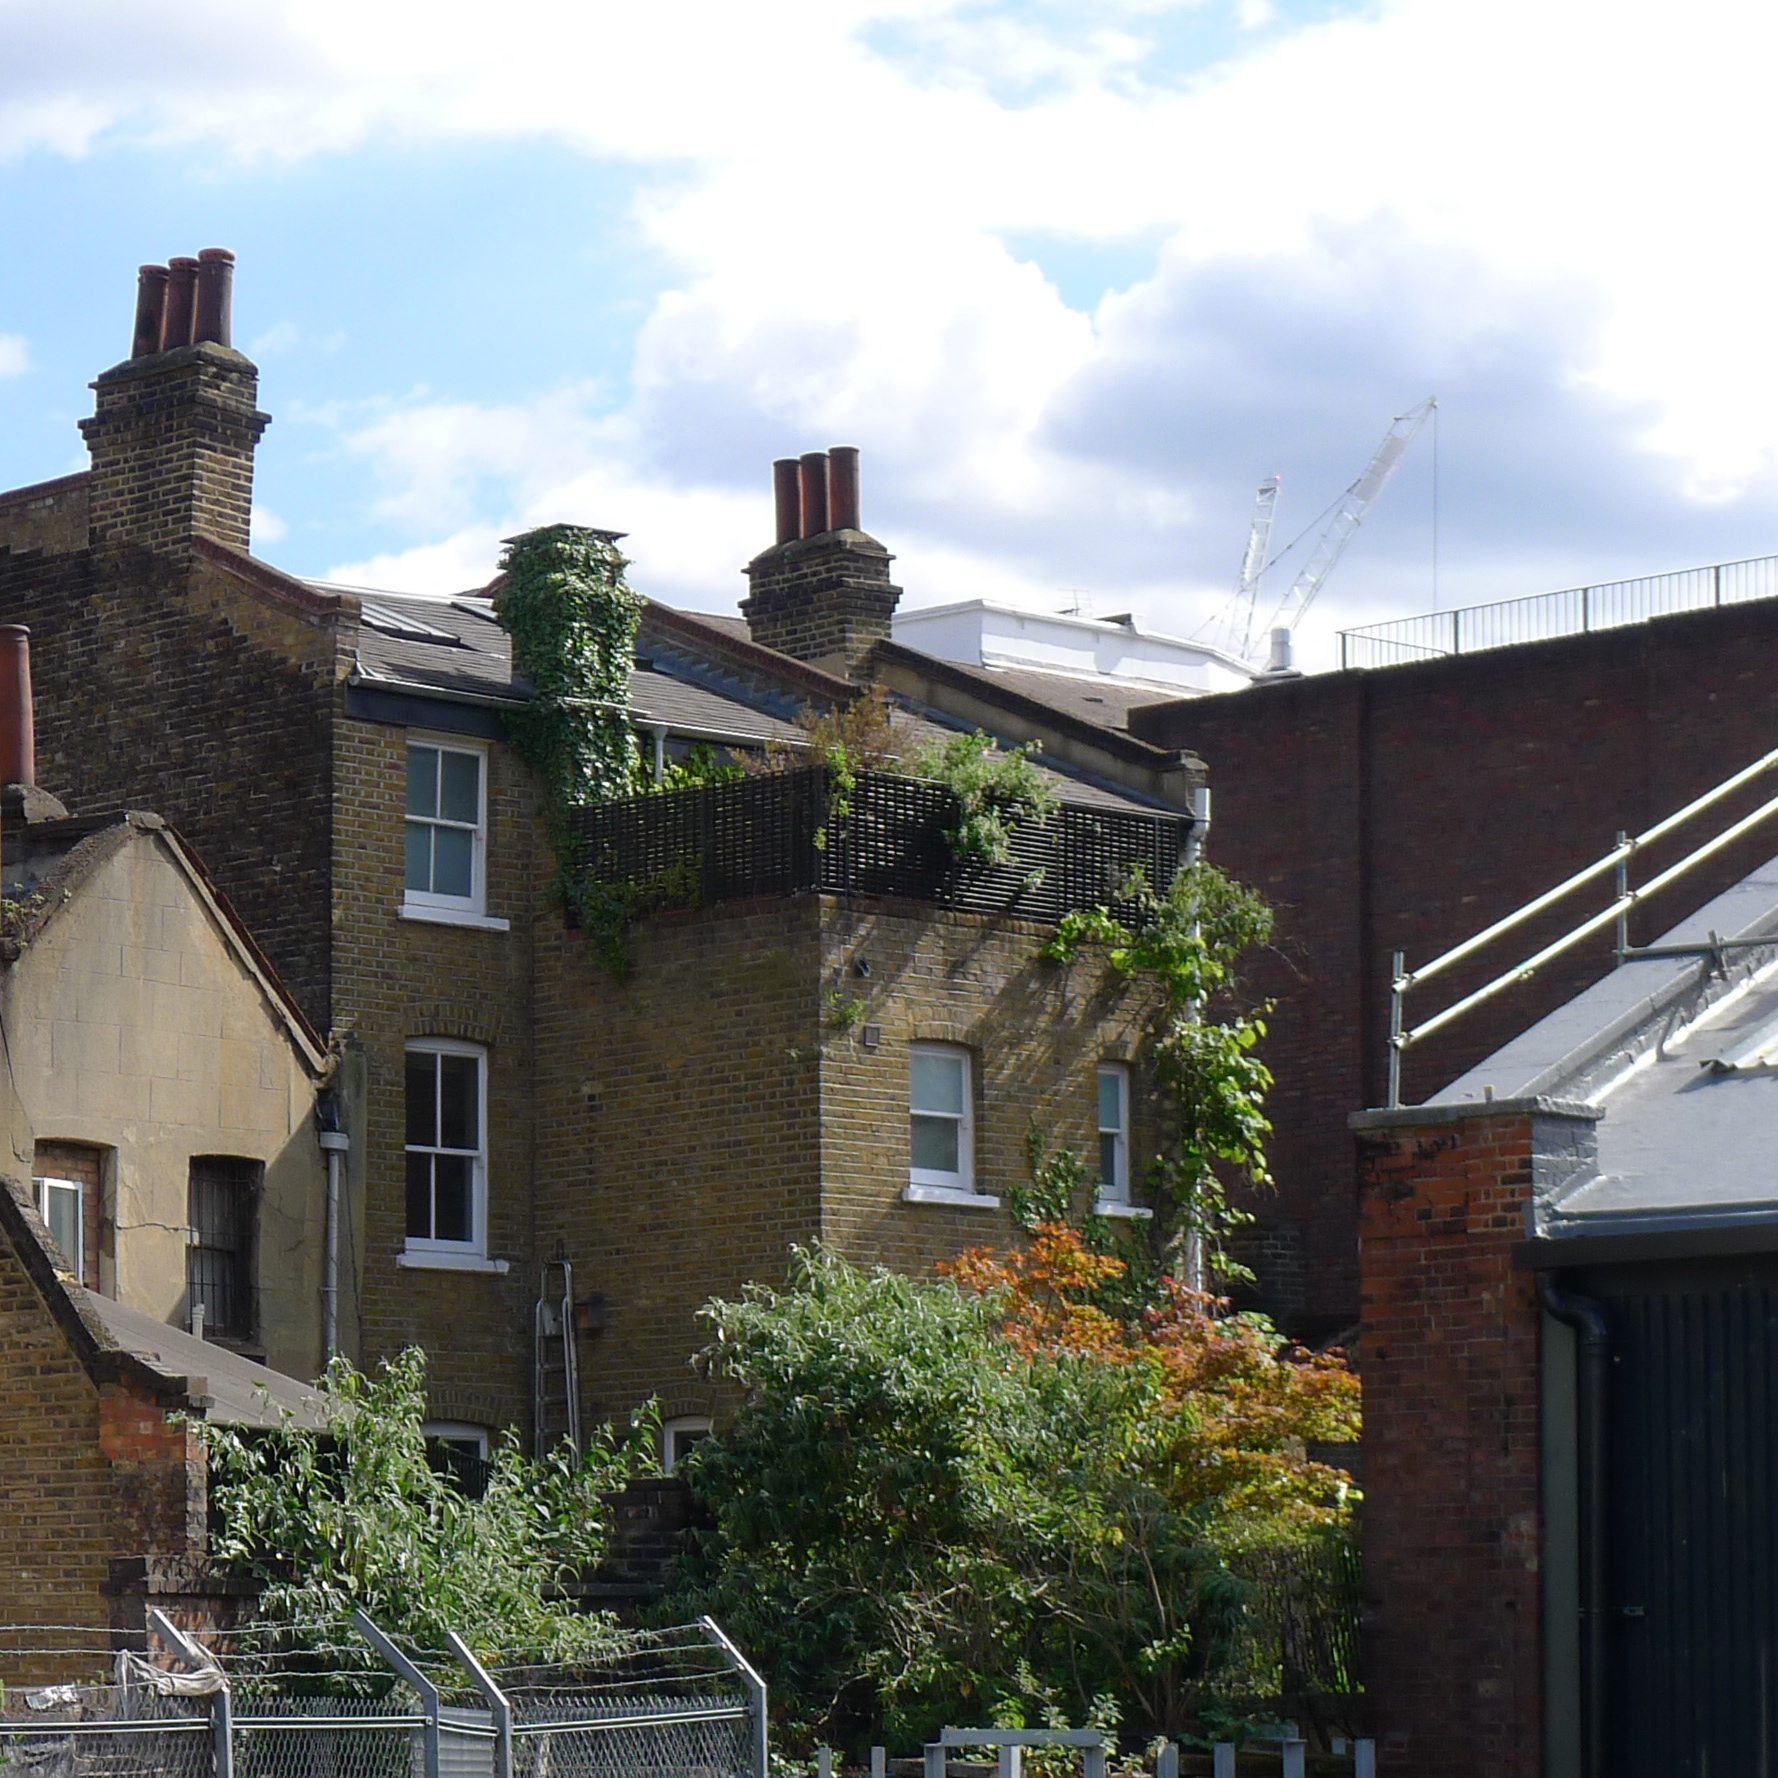 The roof gardens after 10 years